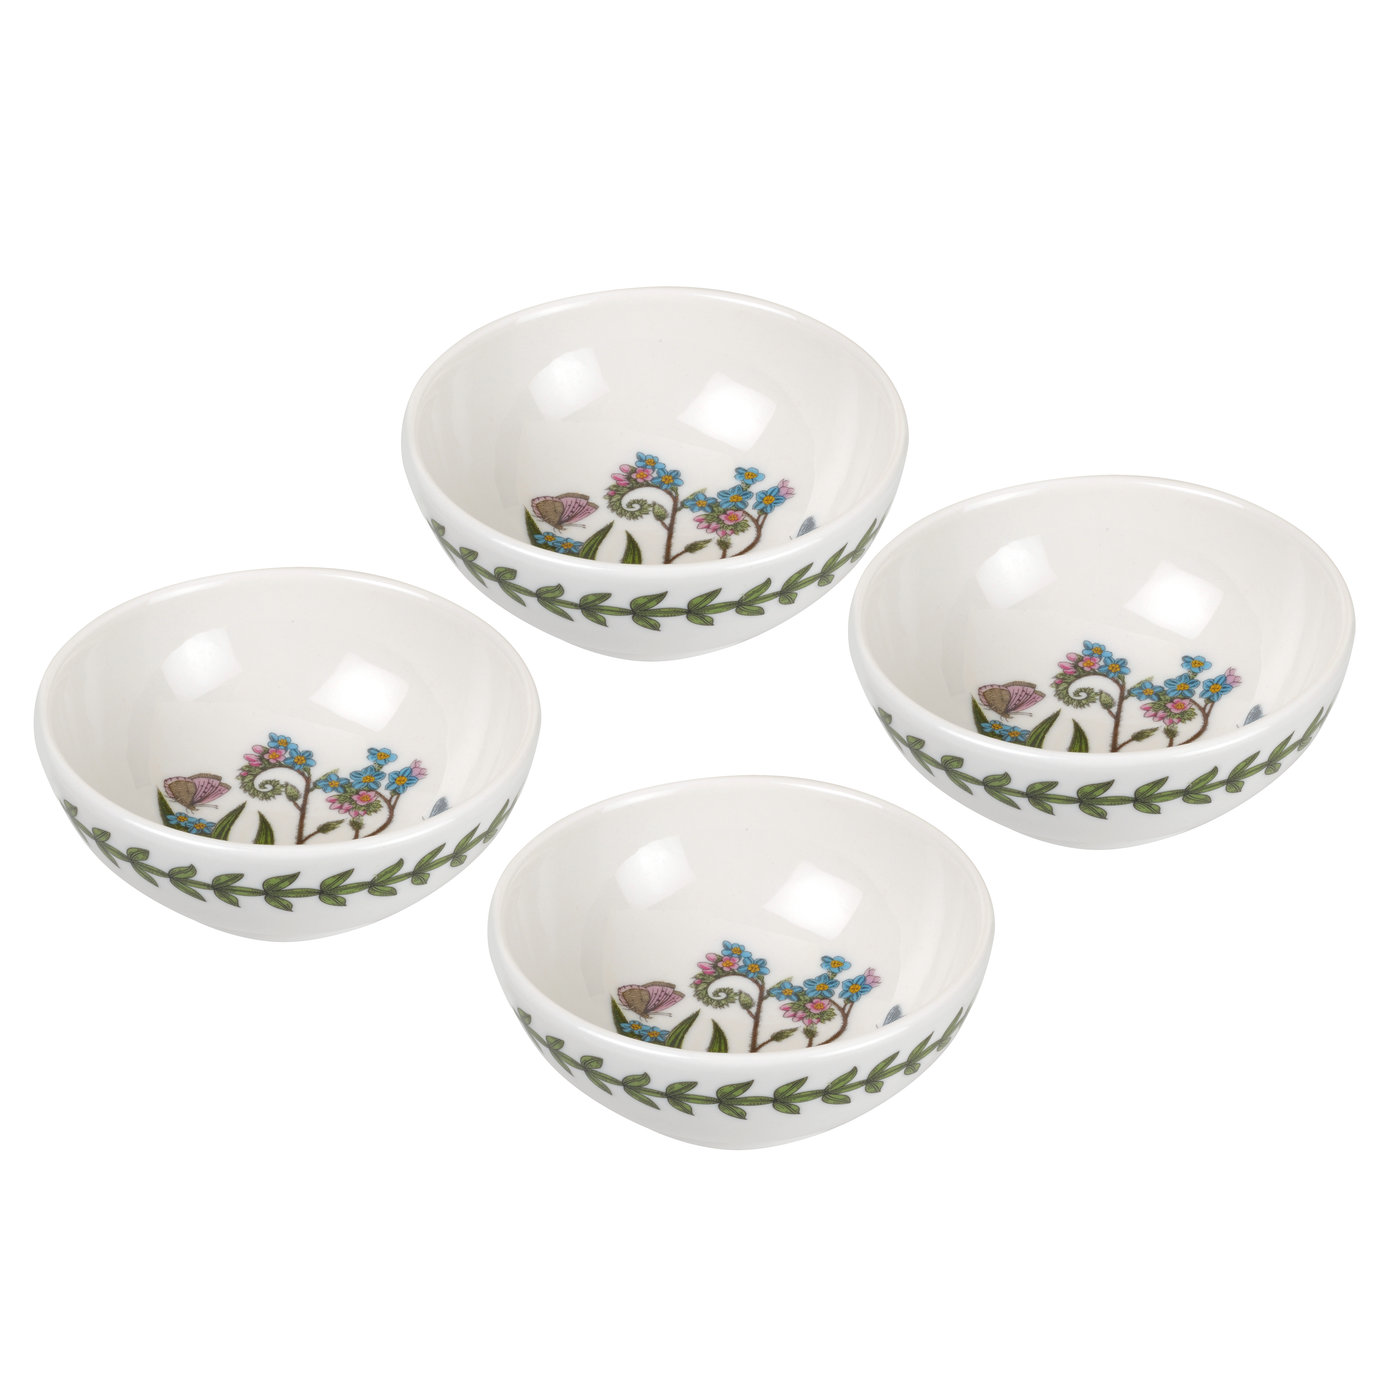 Botanic Garden Set of 4 Small Low Bowls (Forget-me not) image number 0